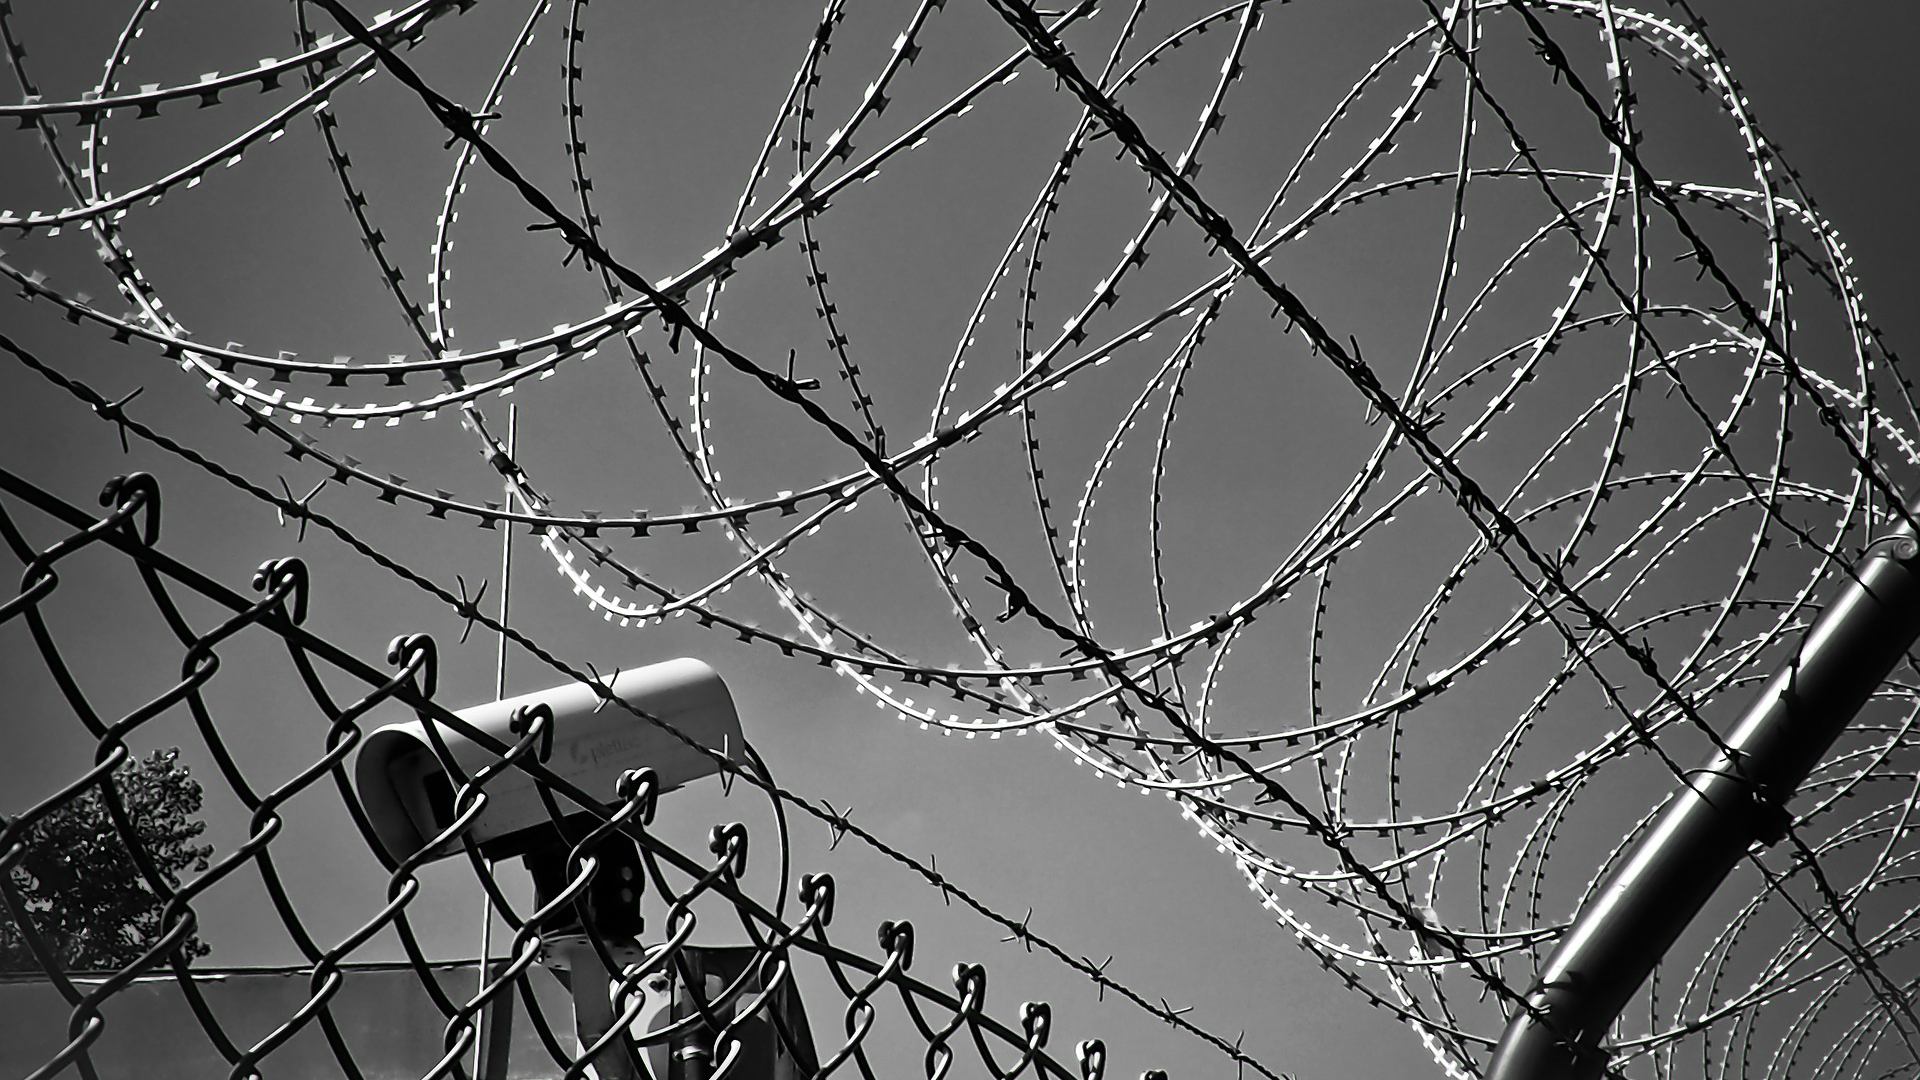 Barbed wire, fence and security camera